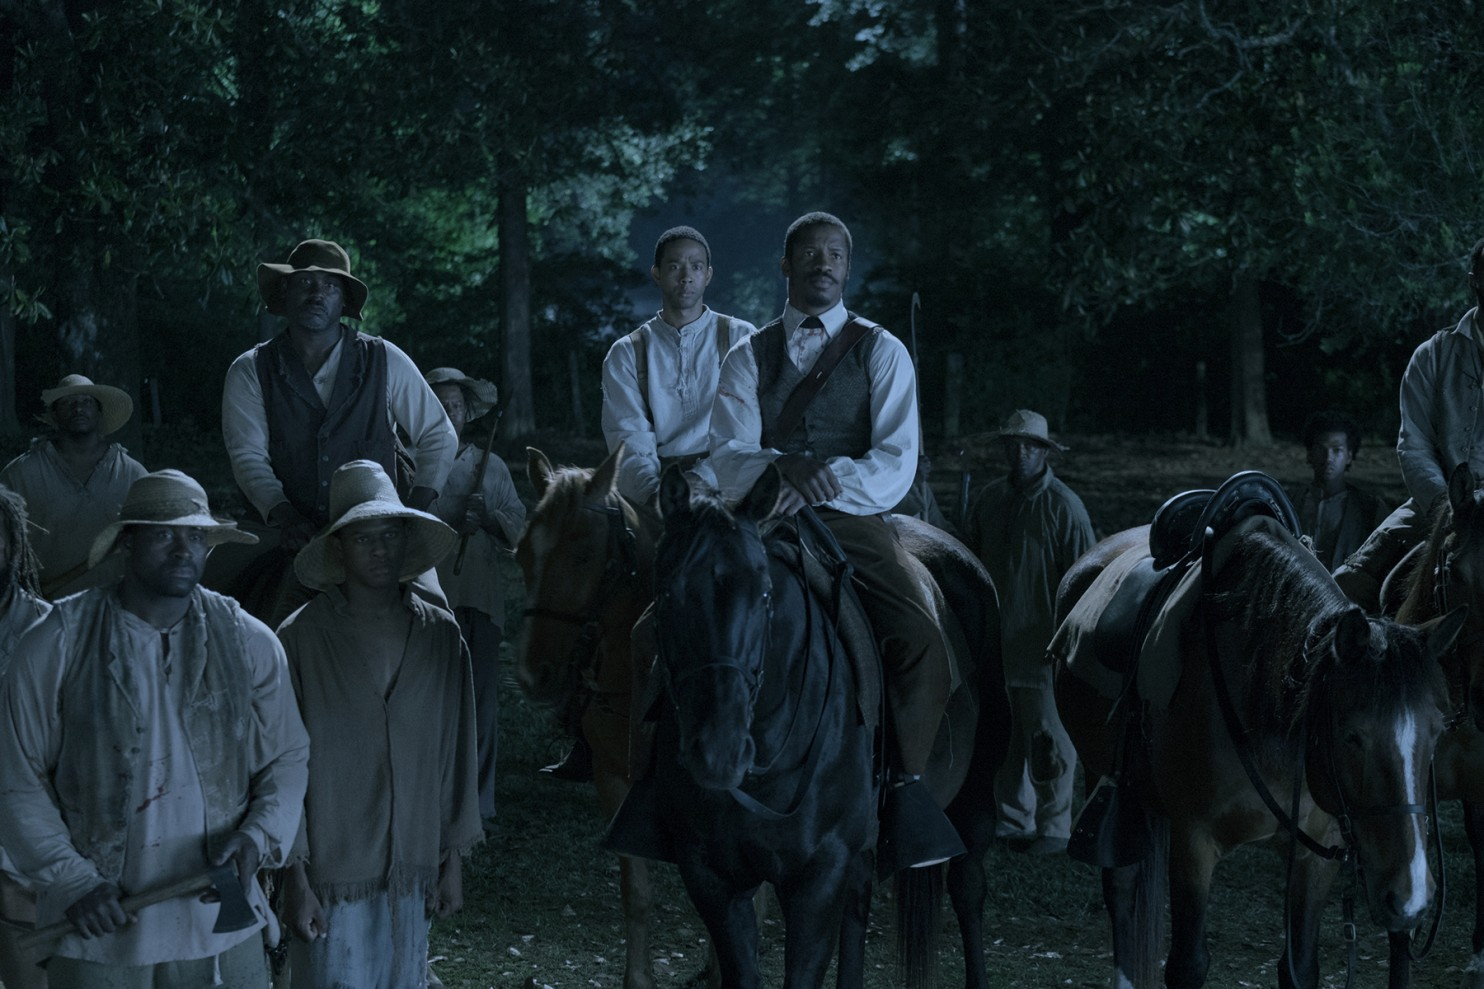 Understanding Rape as a Weapon of Terror: How the film Birth of a Nation missed an opportunity